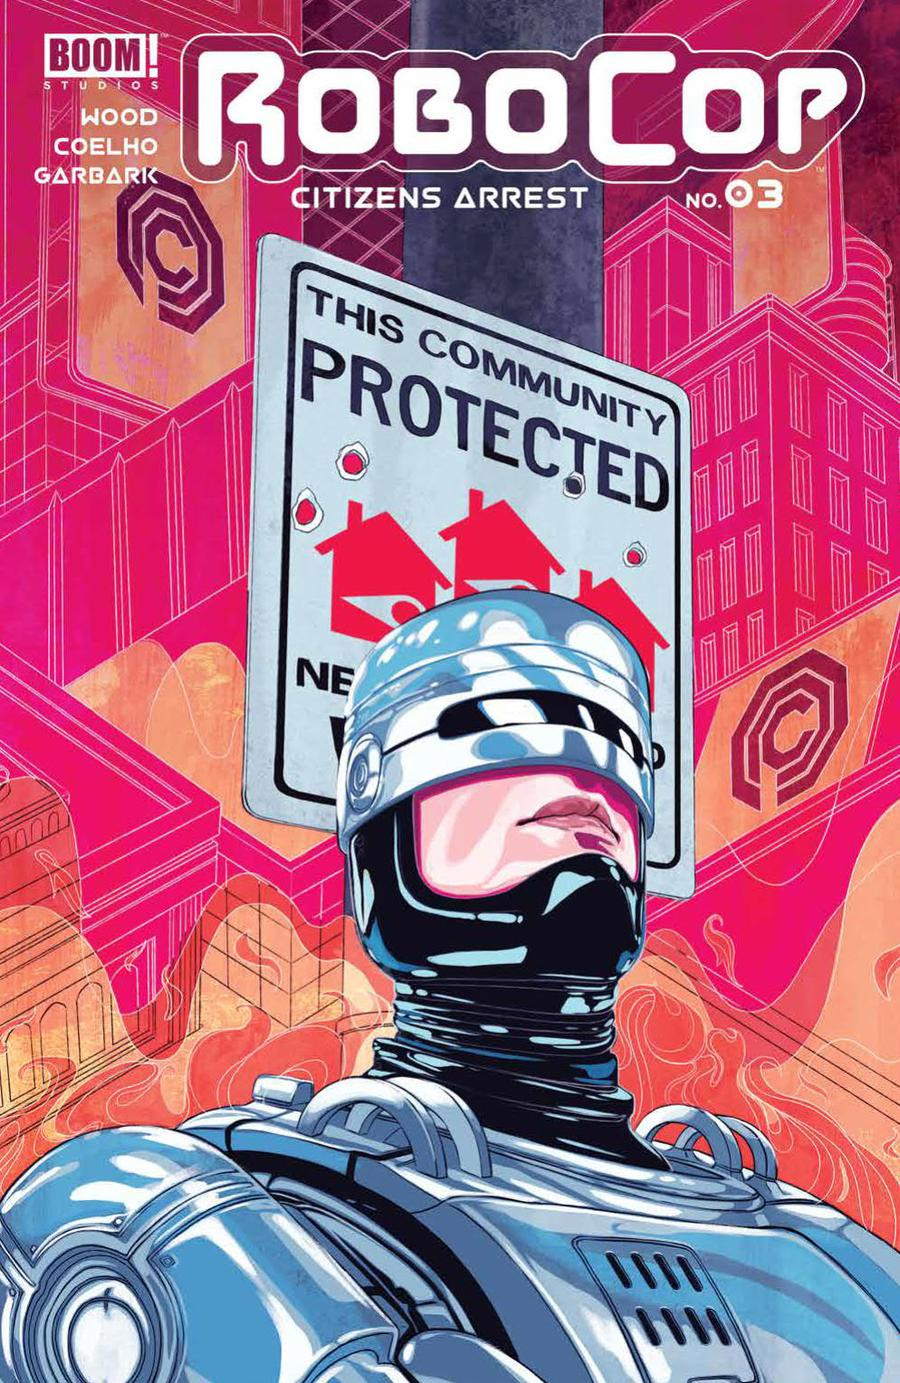 Robocop Citizens Arrest #3 Cover A Regular Nimit Malavia Cover